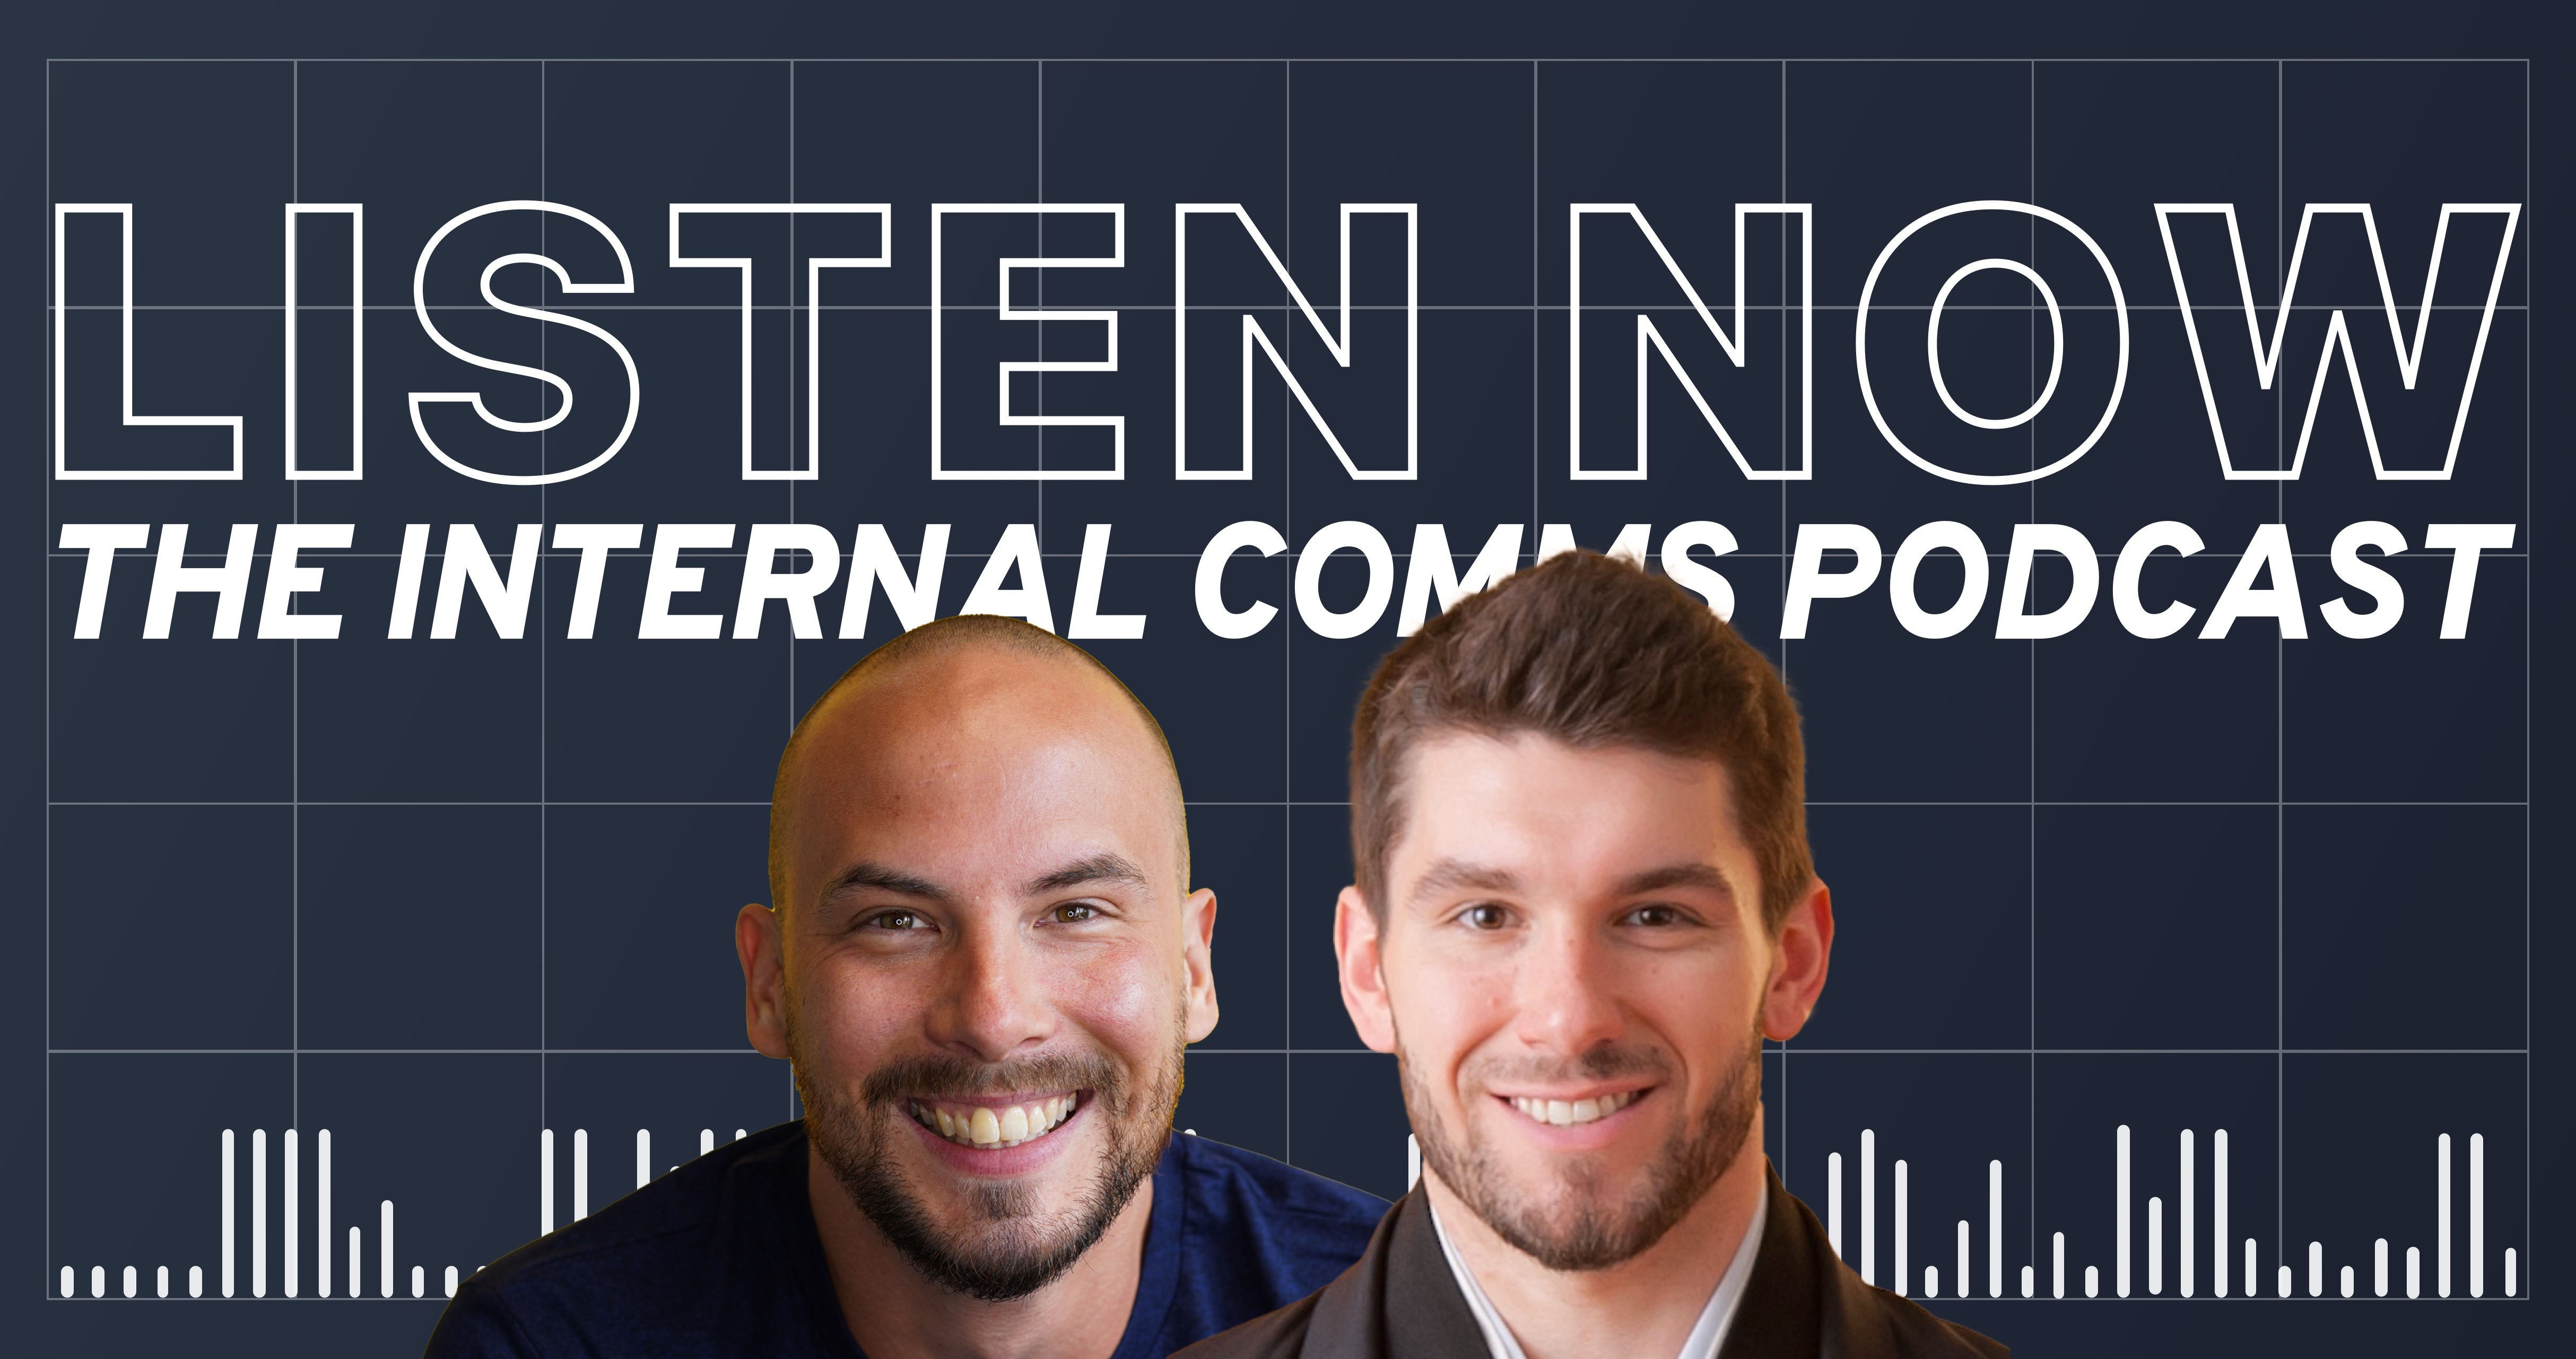 Podcast: Internal Comms in Japan